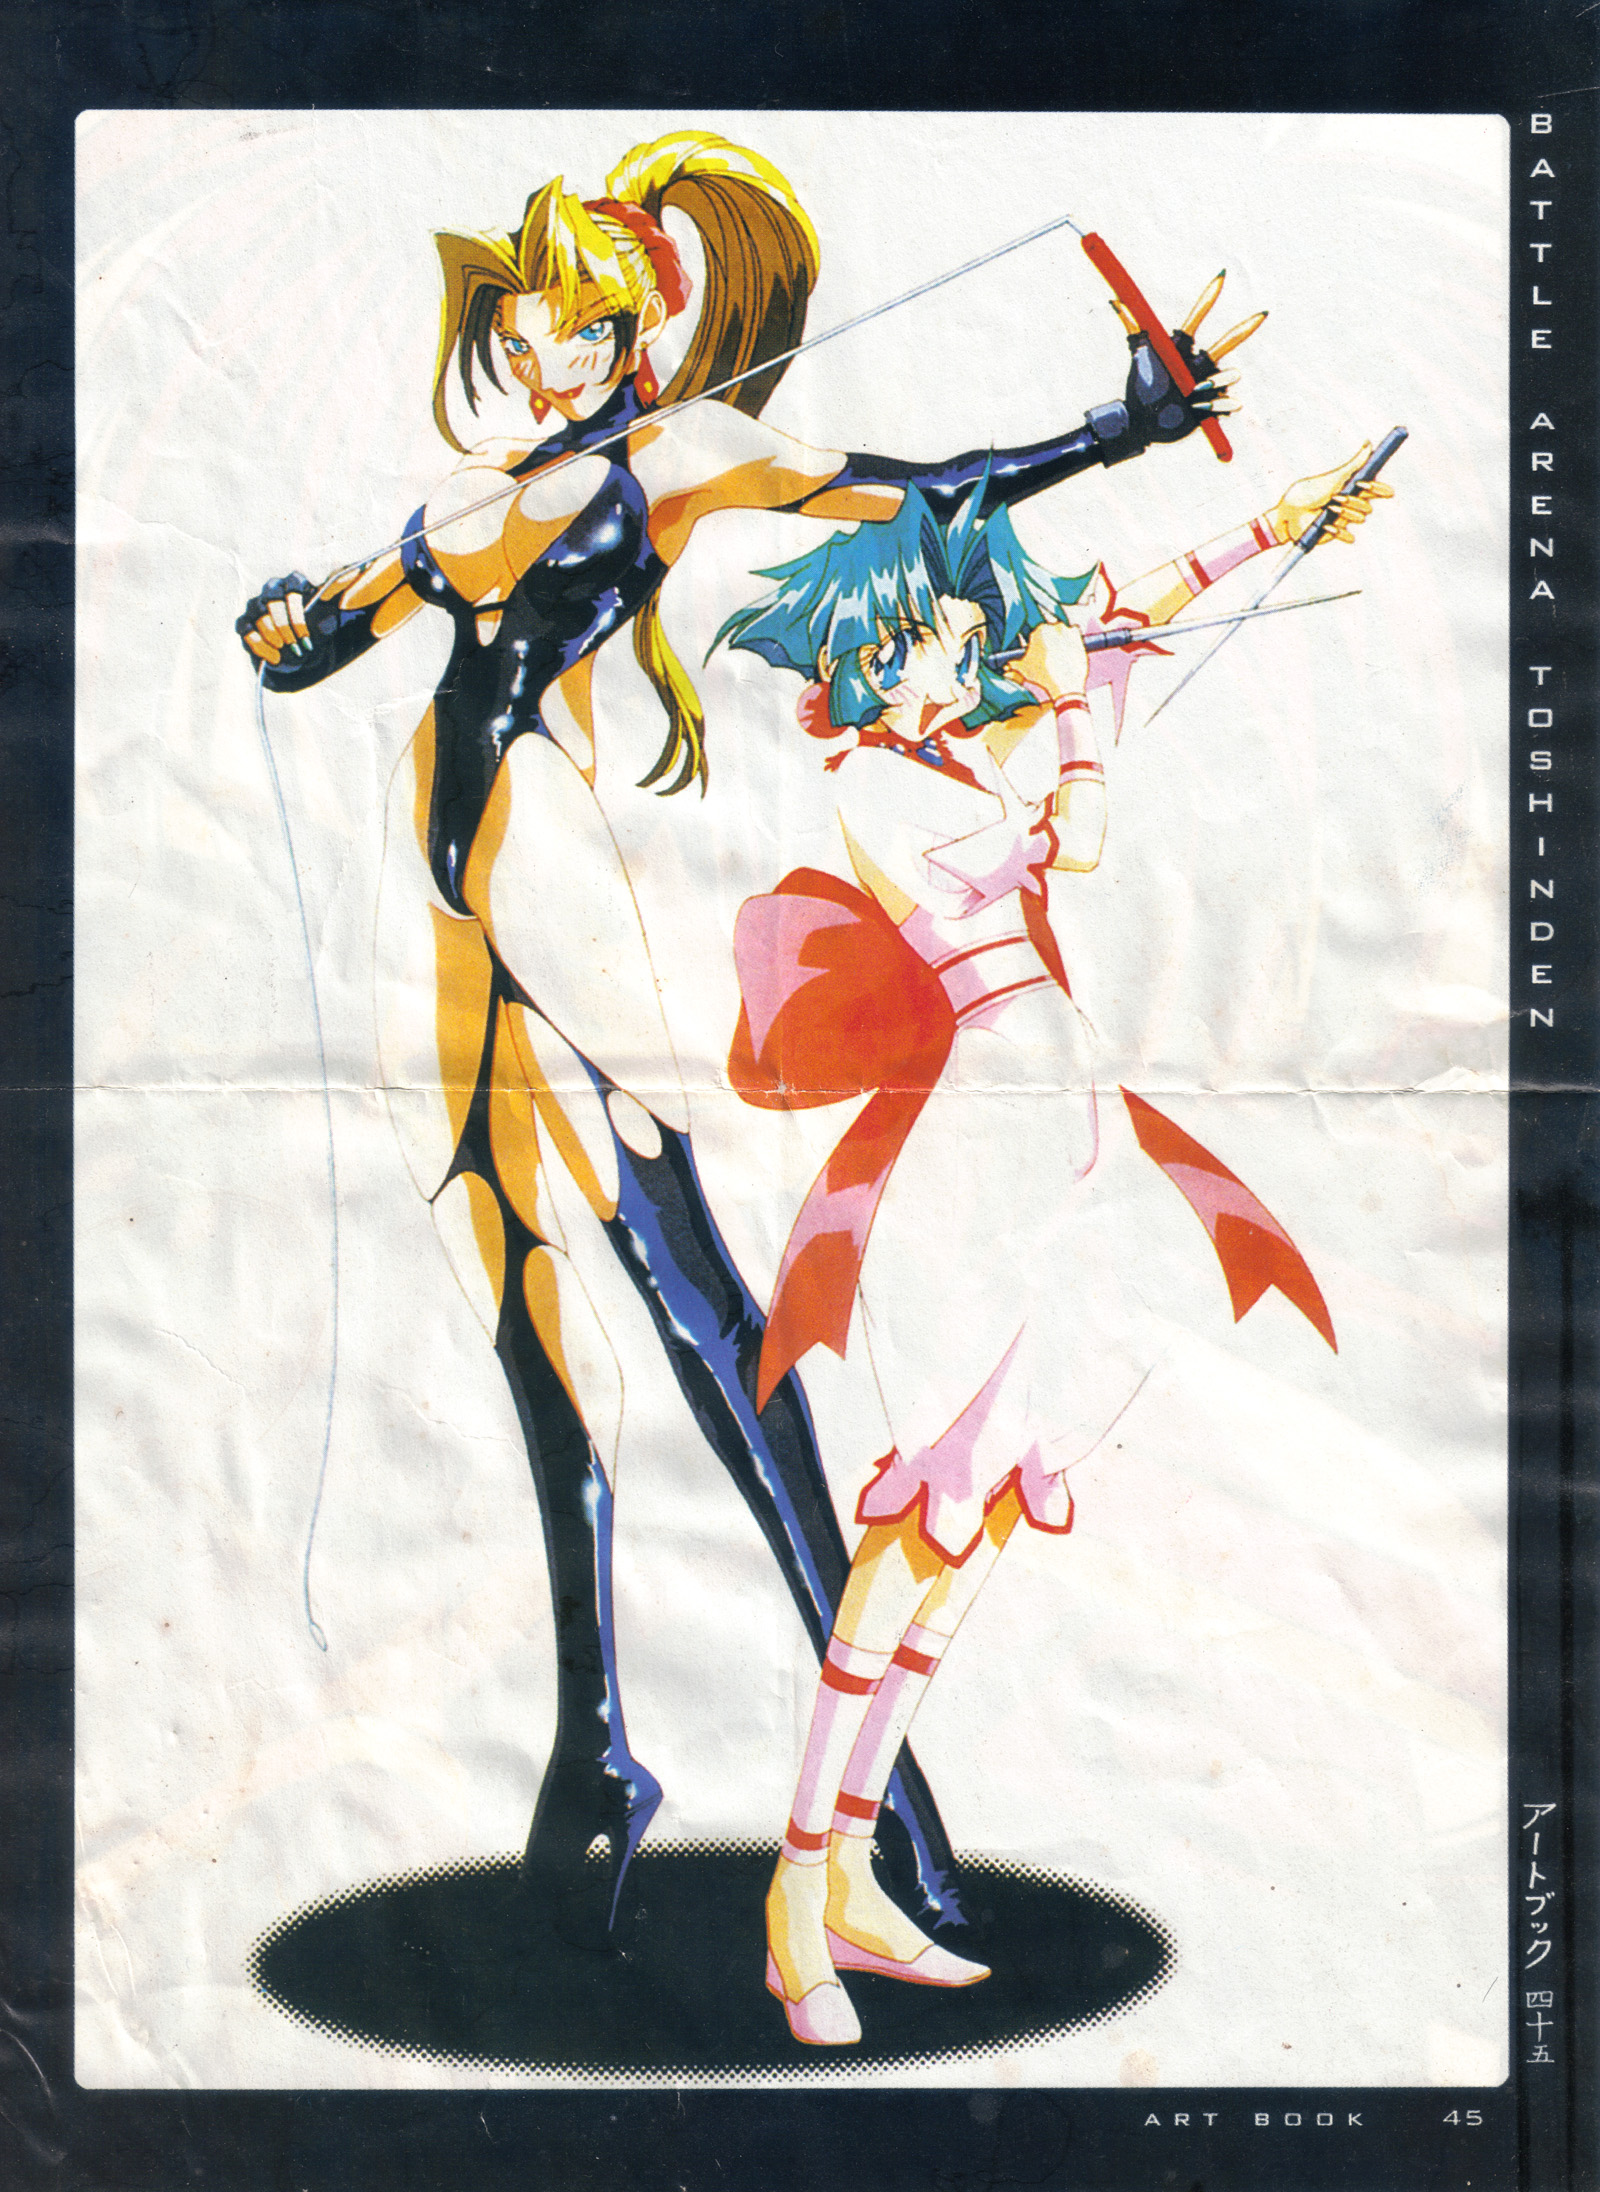 Battle Arena Toshinden: Artbook IV - Fight p44 - Minitokyo